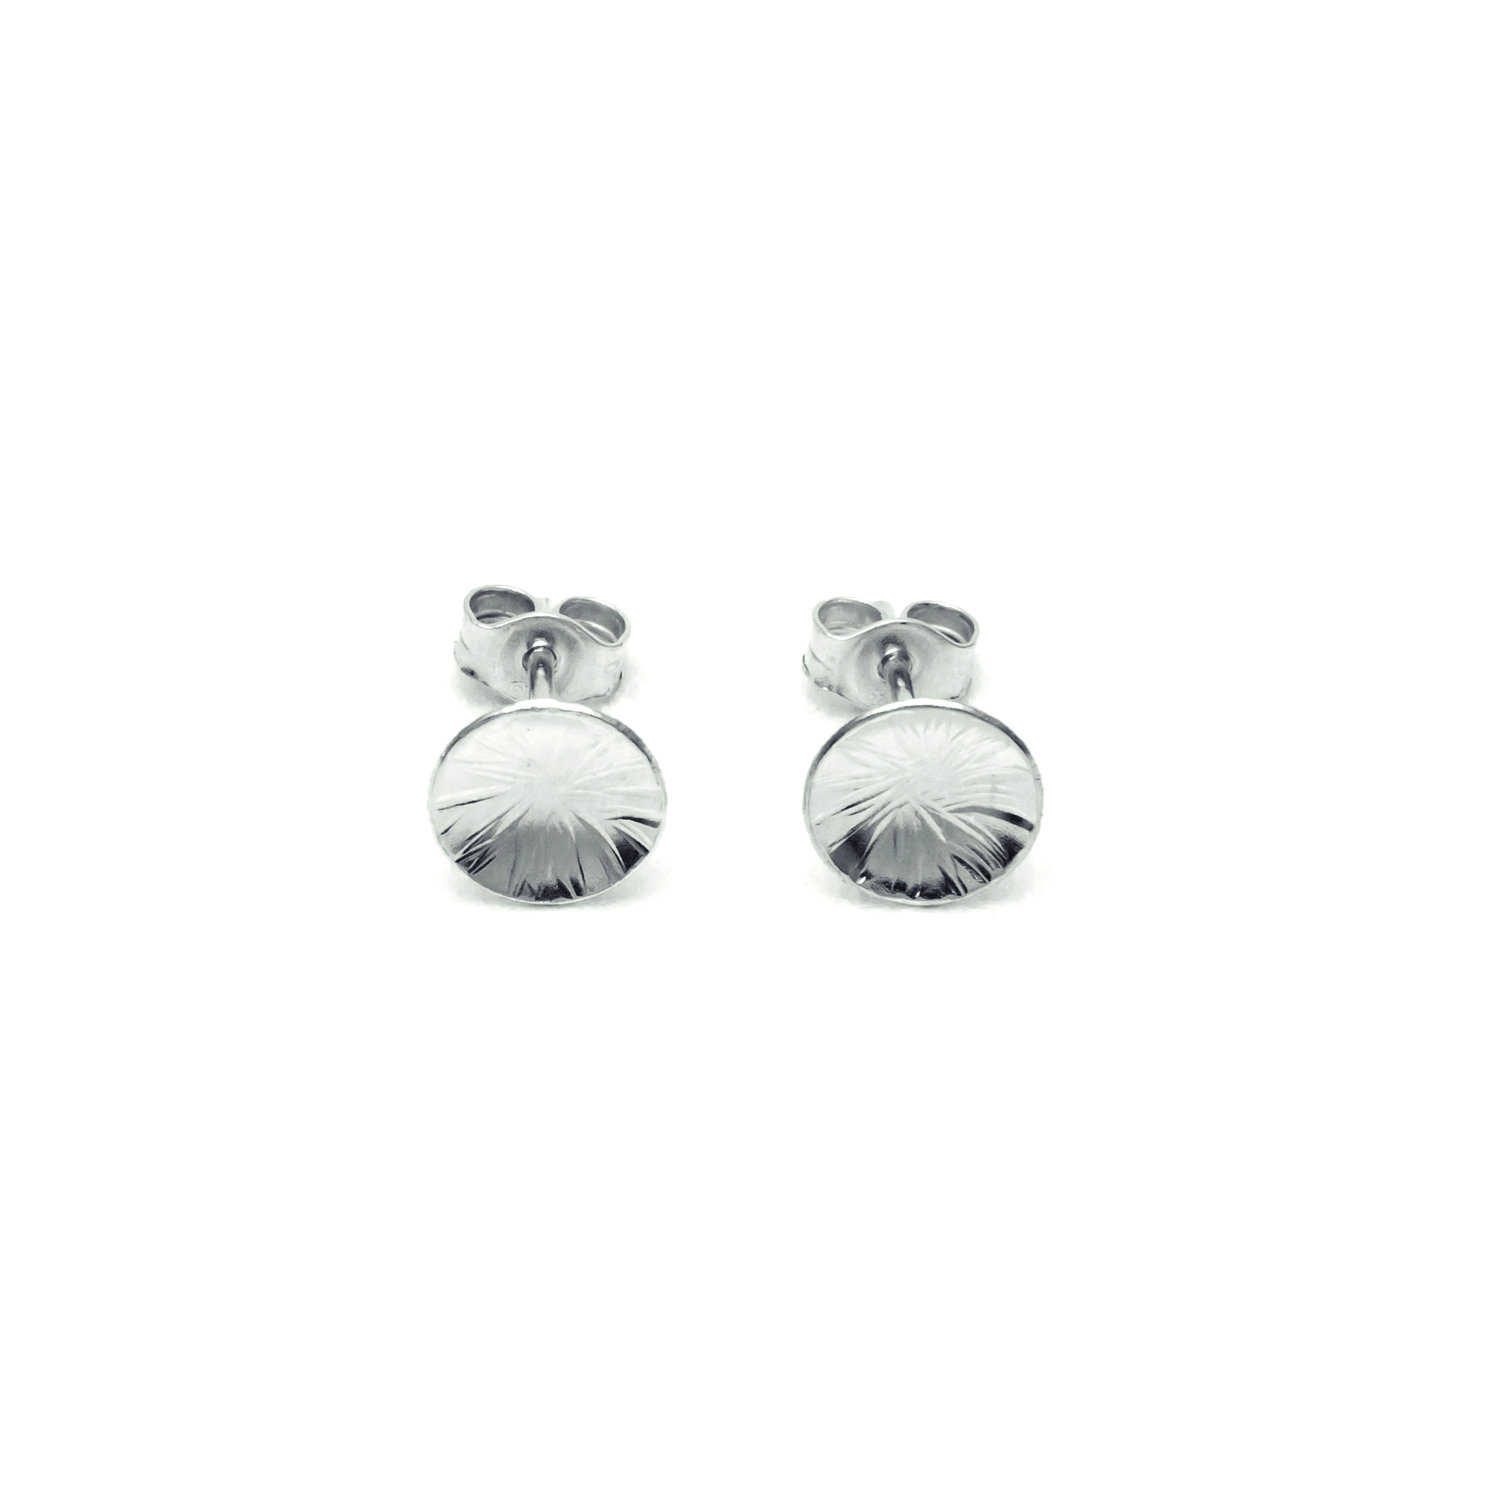 3a580dc12 Textured Dome Studs — Contemporary Silver Jewellery Handmade in ...